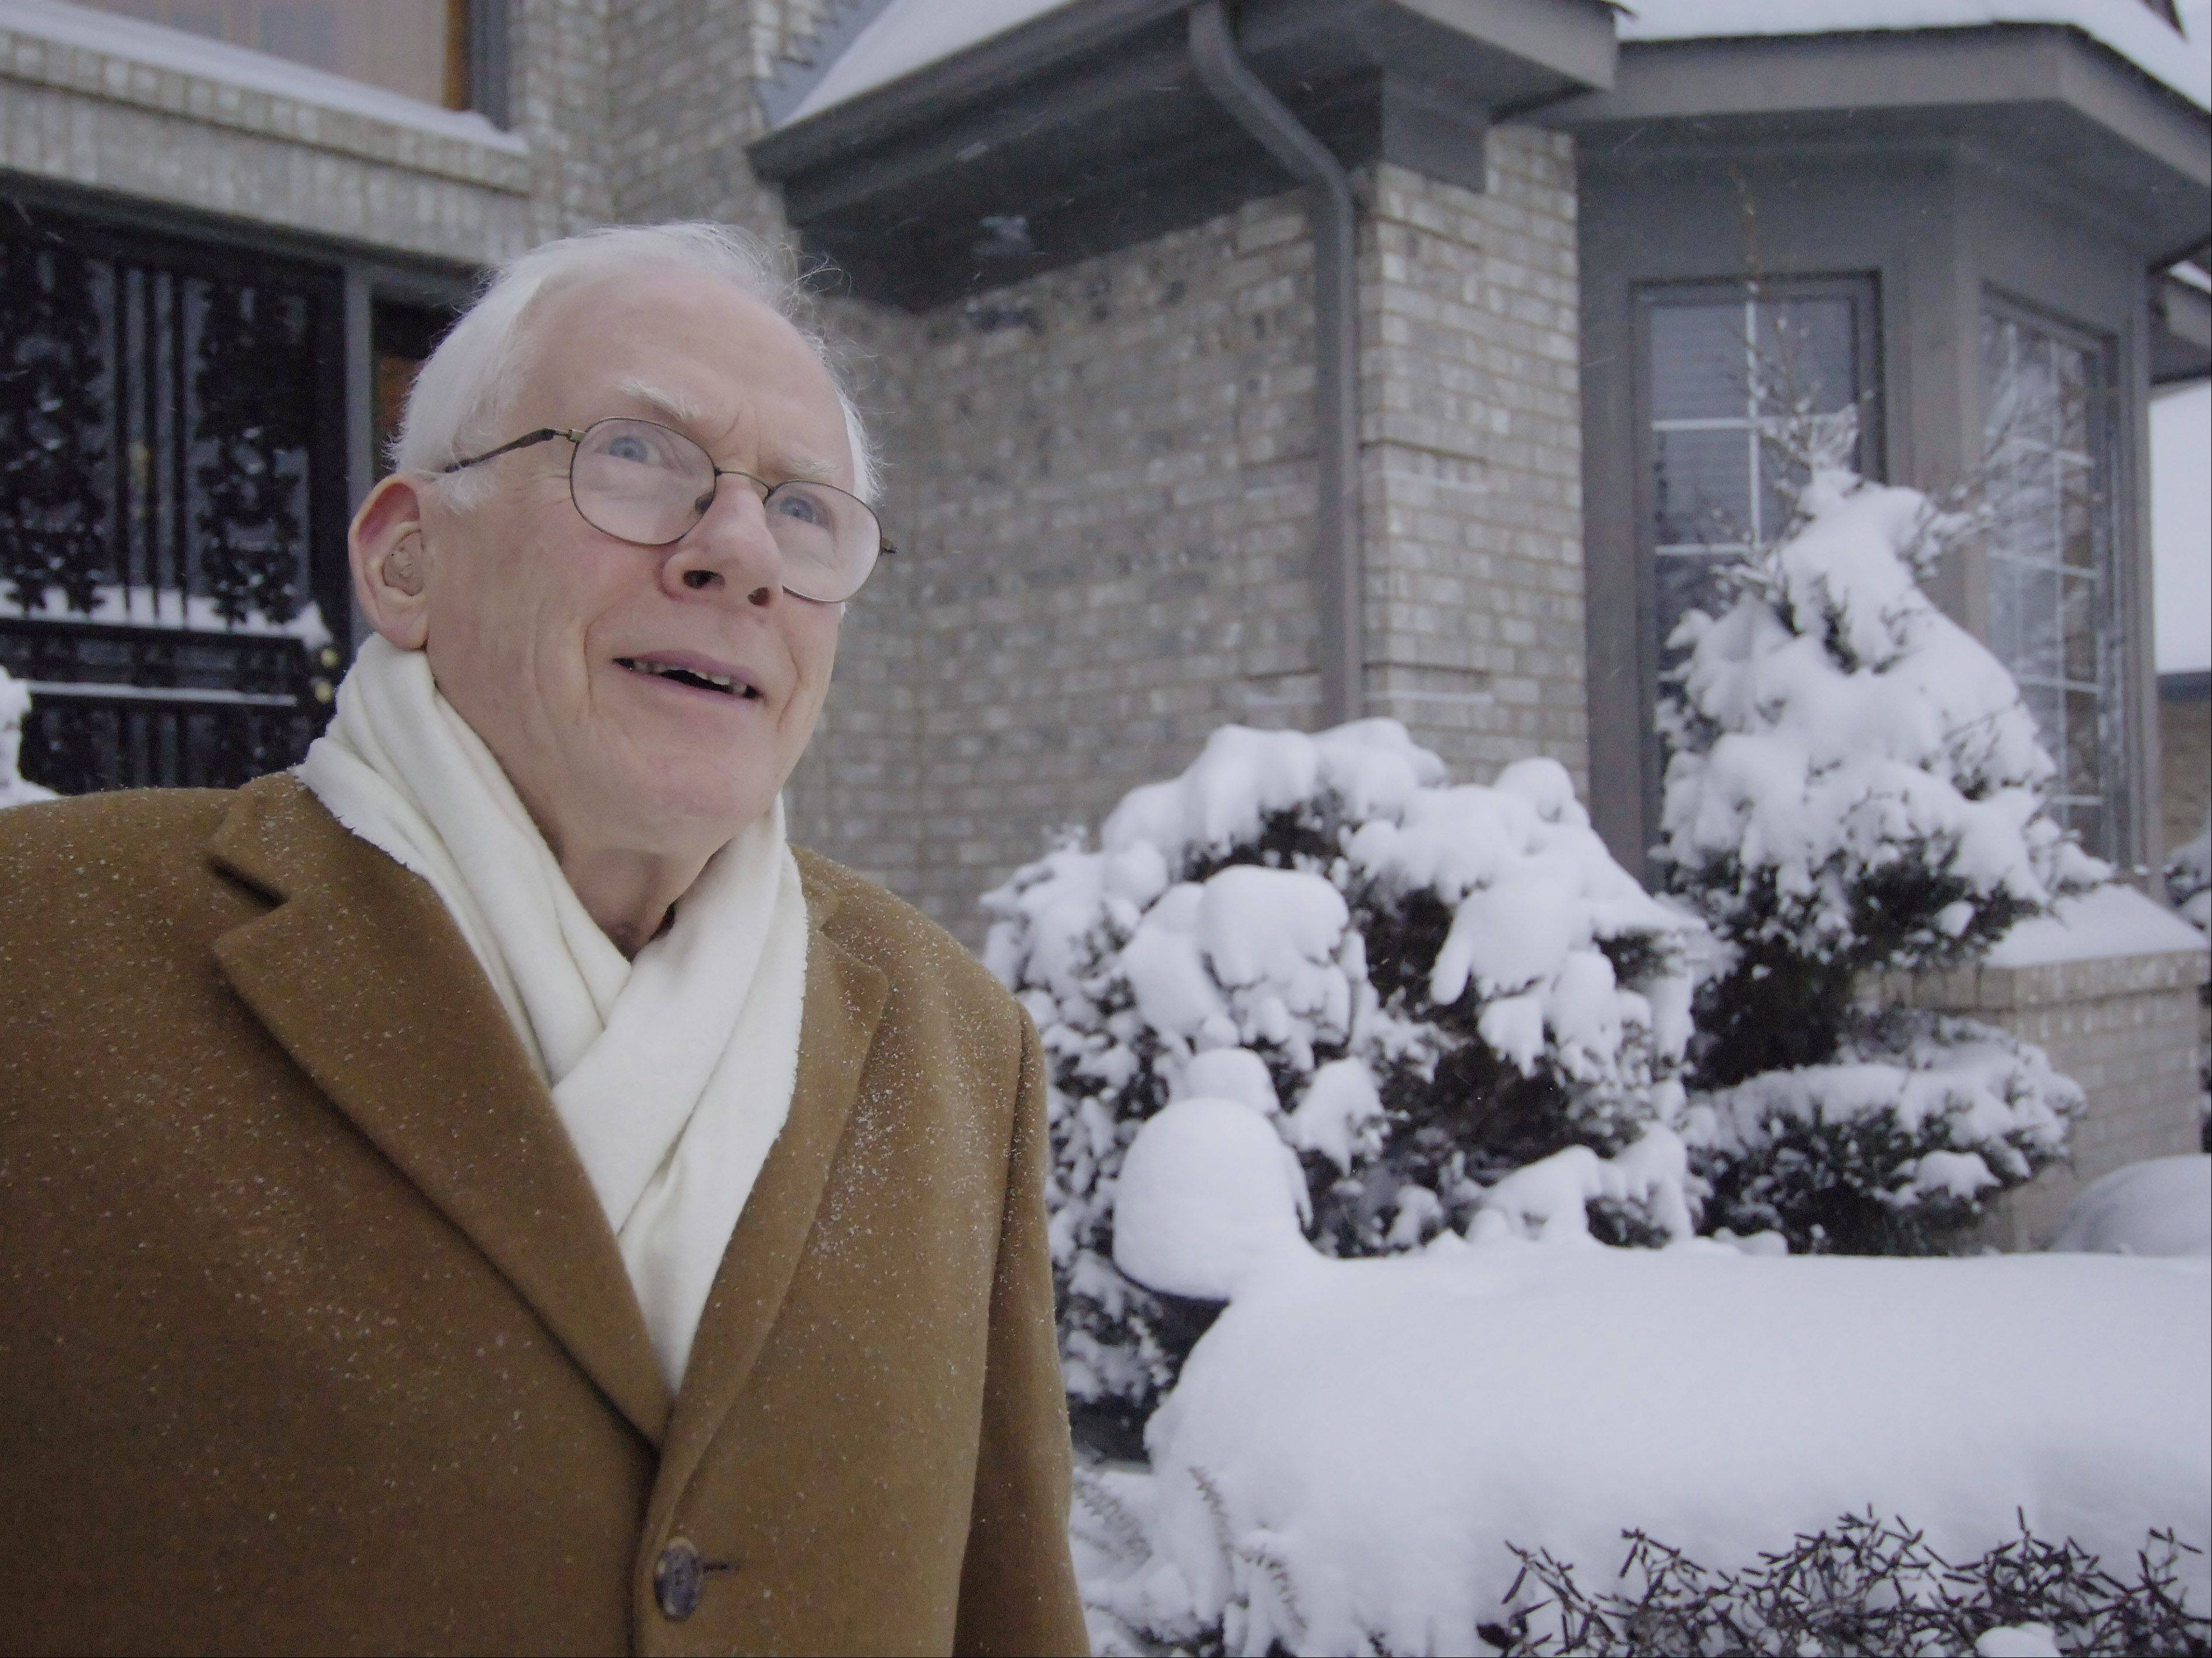 This freak snowstorm in February 2007 brought legendary meteorologist Harry Volkman out of his Itasca home to talk about unusual weather. Having turned 87 on Thursday, Harry might be best remembered for the controversial time he became the first person to broadcast a tornado warning on TV.